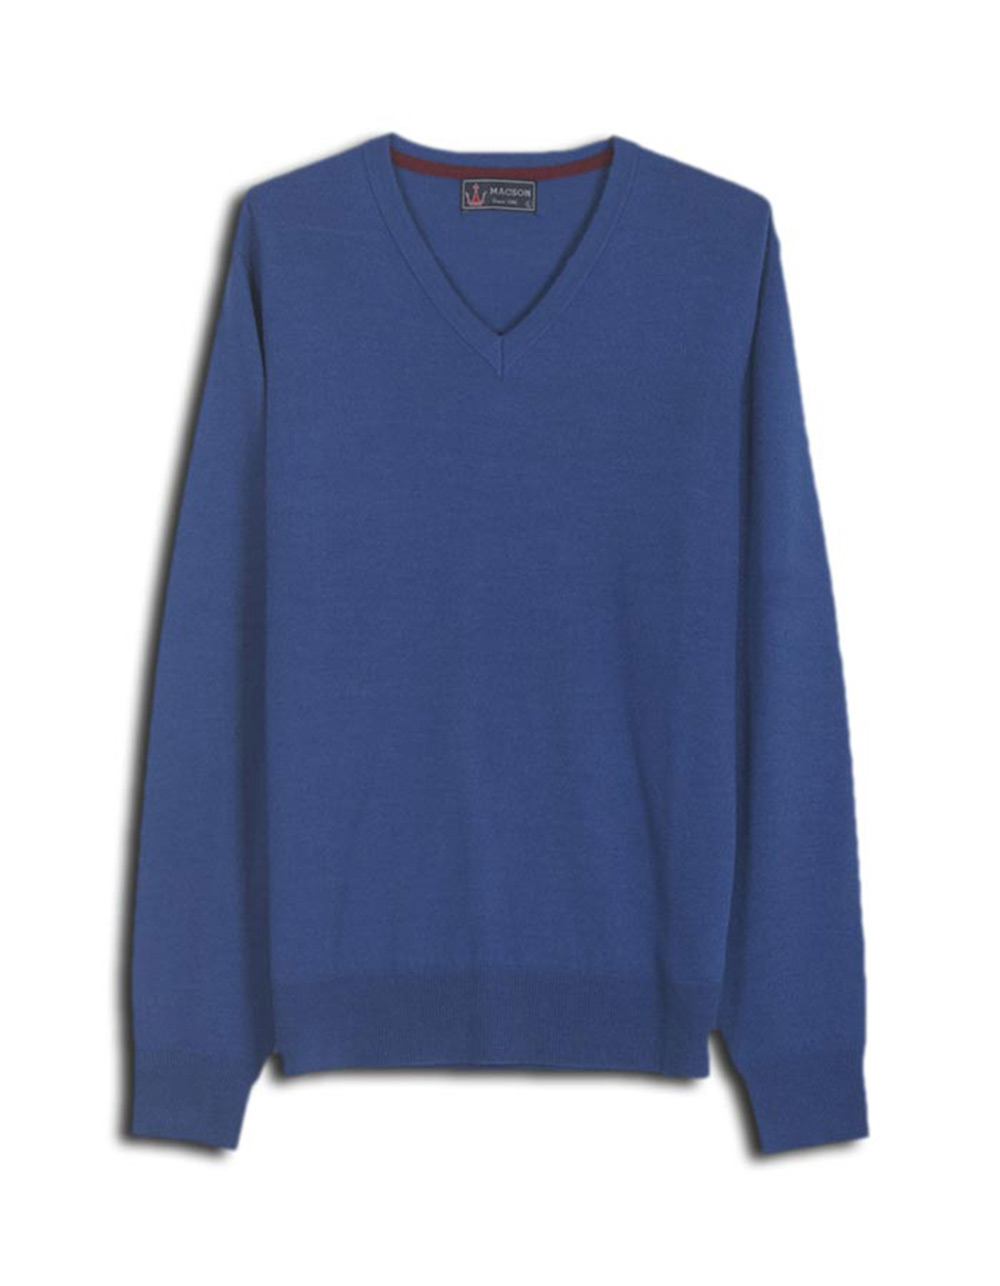 Deep blue v-neck sweater - Backside